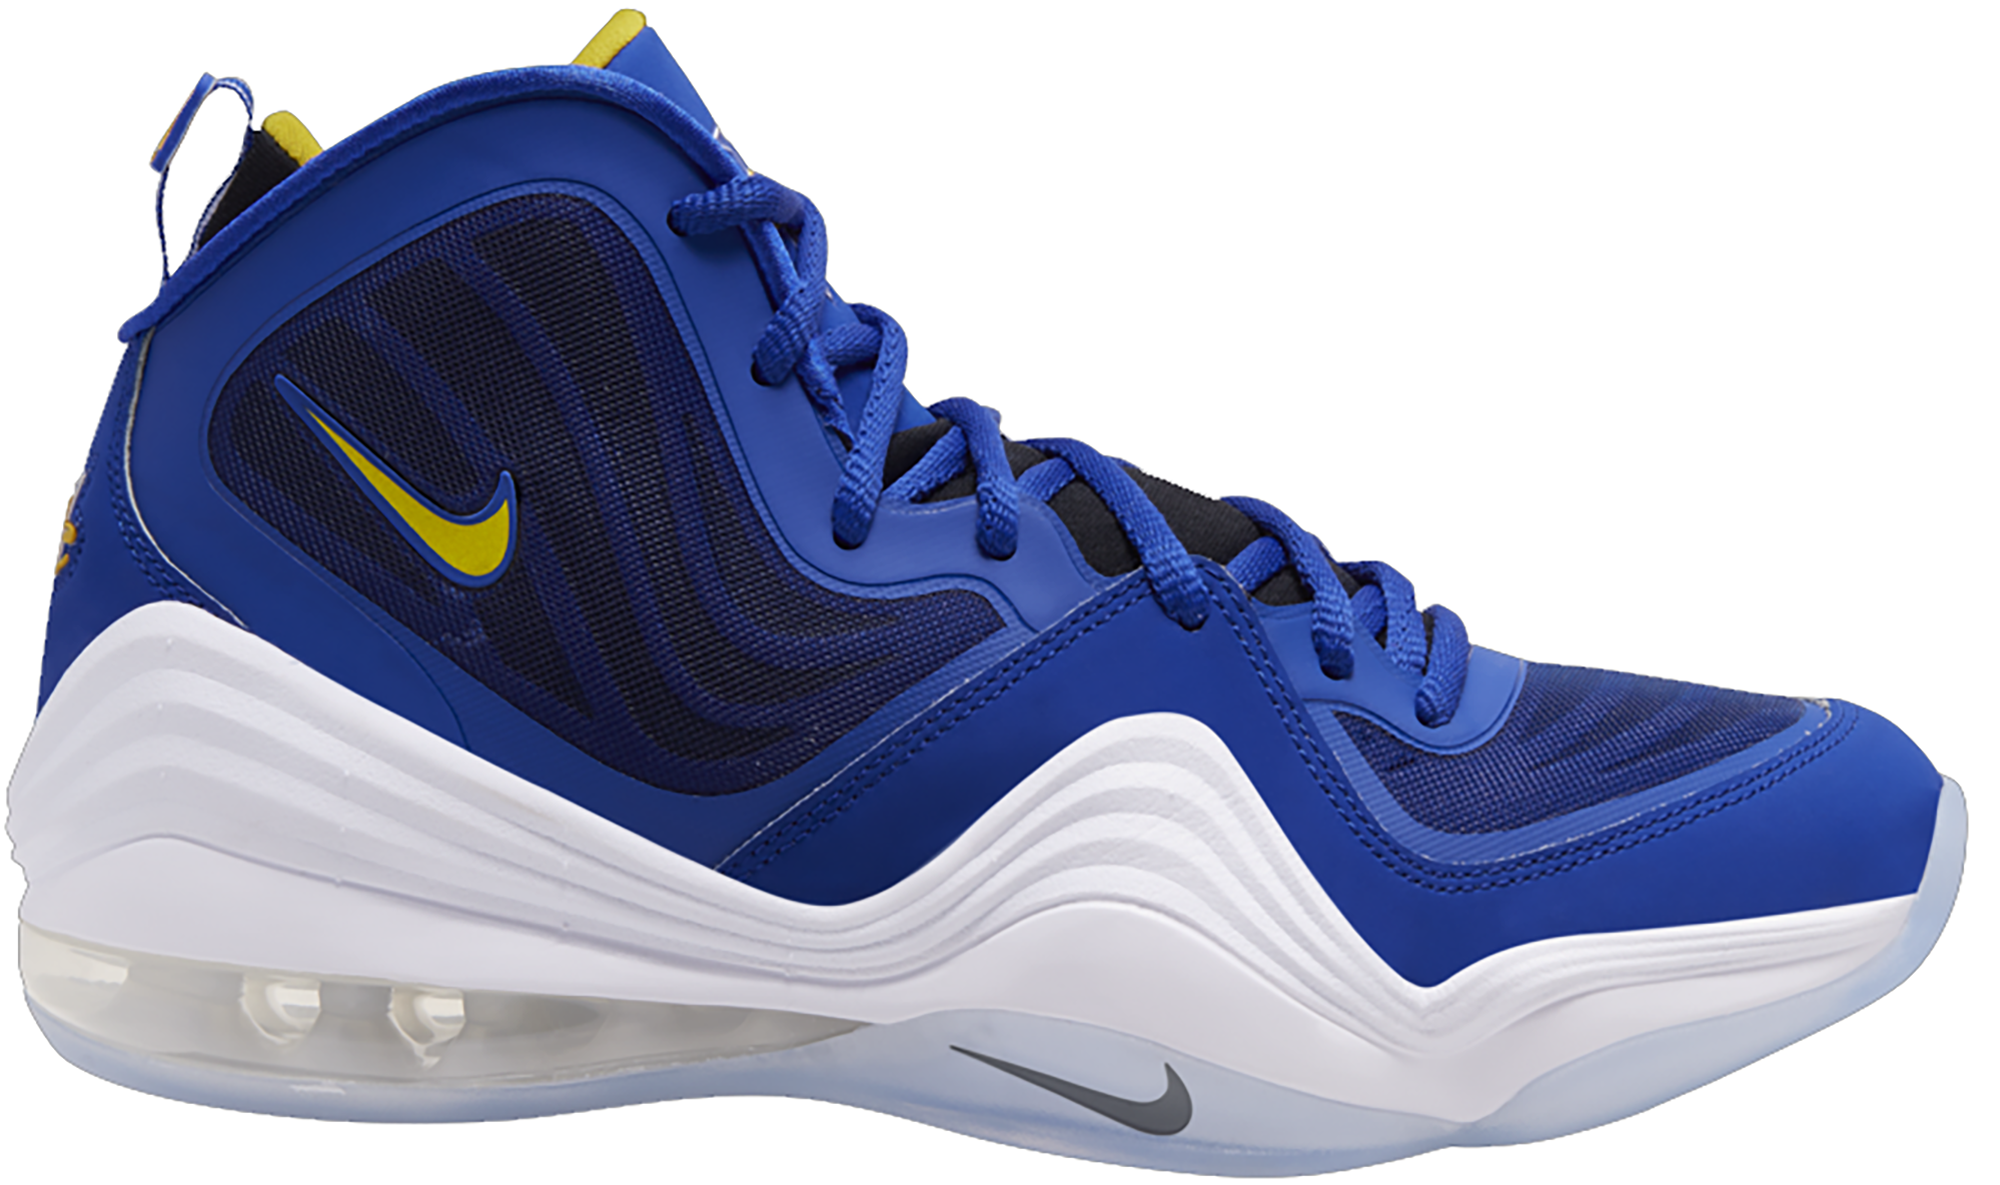 Nike Air Penny 5 Blue Chips - 537331-402